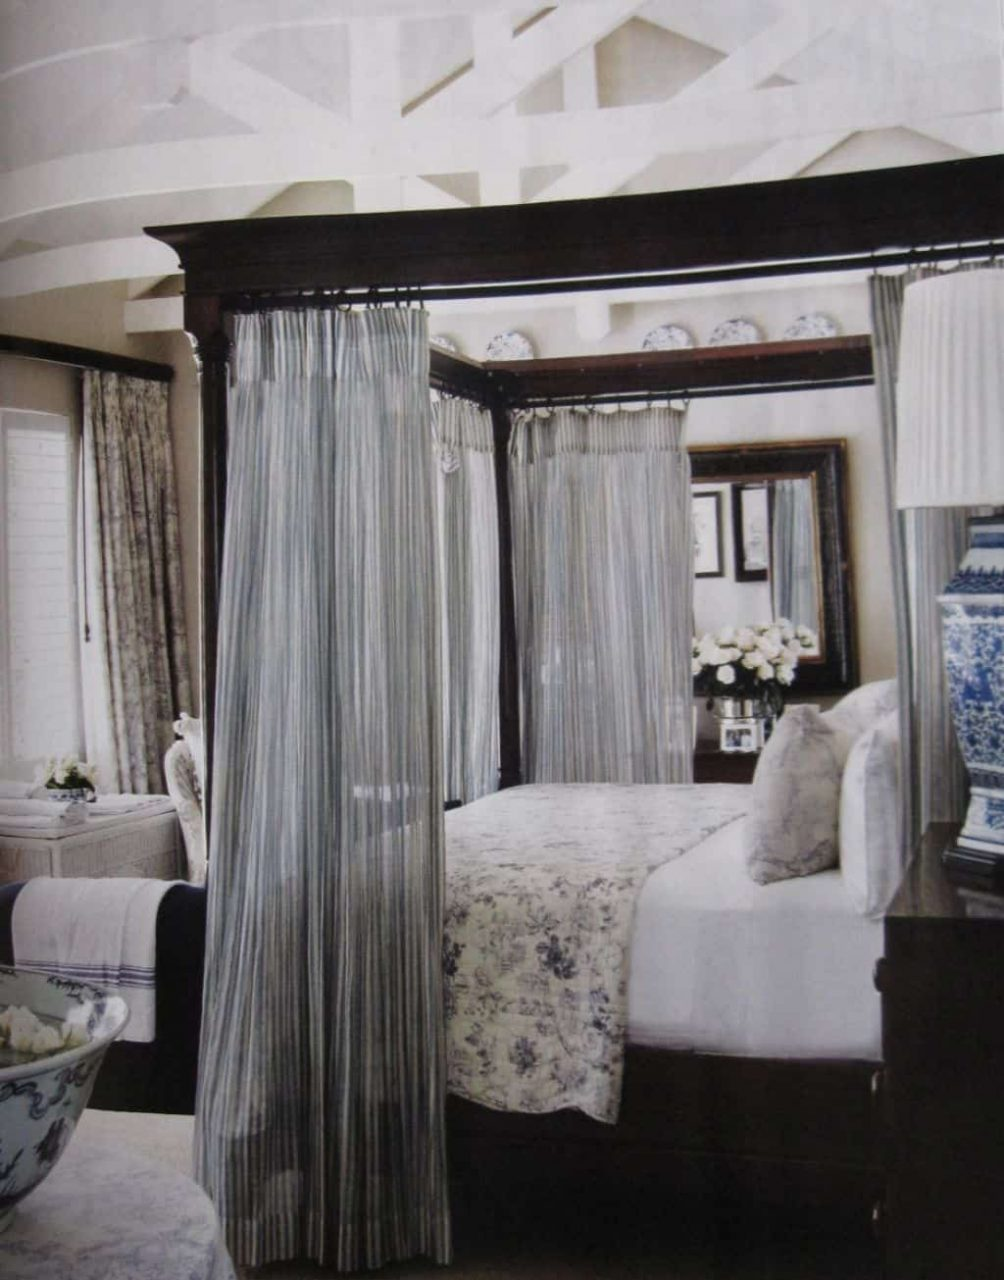 Queen Sized Canopy Bed With Curtains Hang Curtains In A Canopy Bed